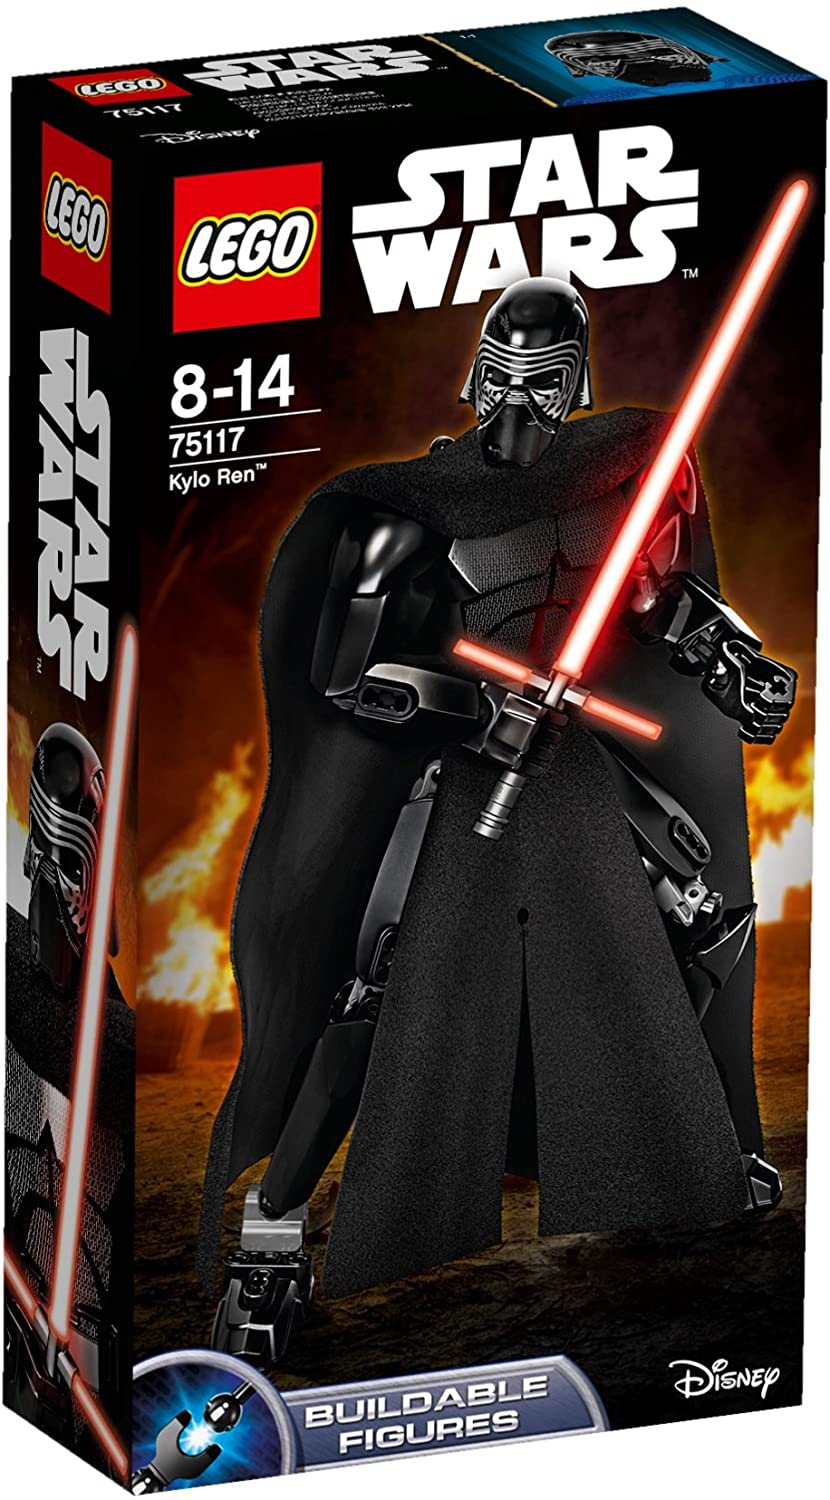 LEGO Star Wars - Kylo Ren Buildable Figure